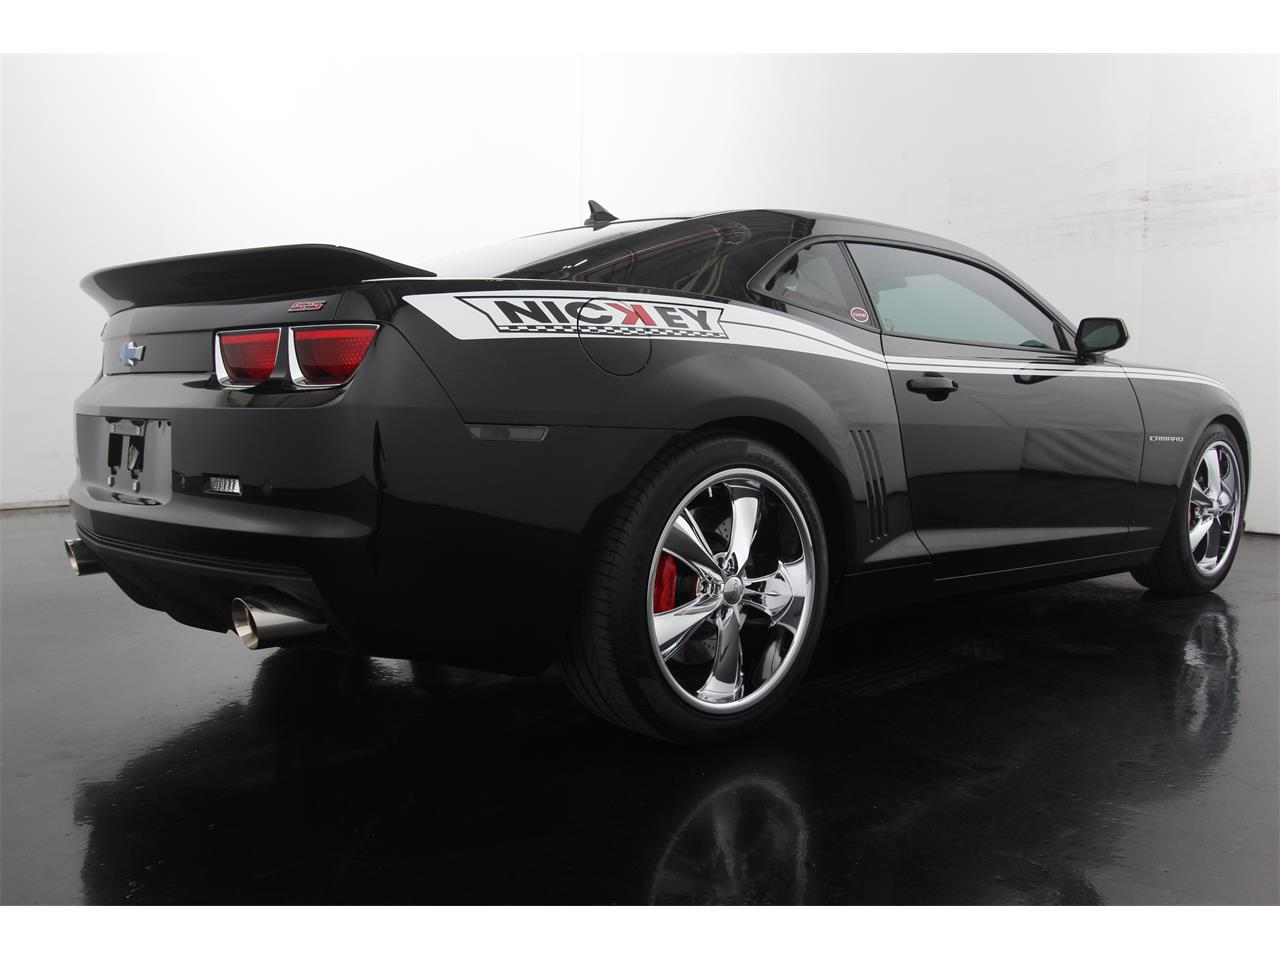 Large Picture of '12 Camaro located in Illinois - $52,500.00 - JHYN